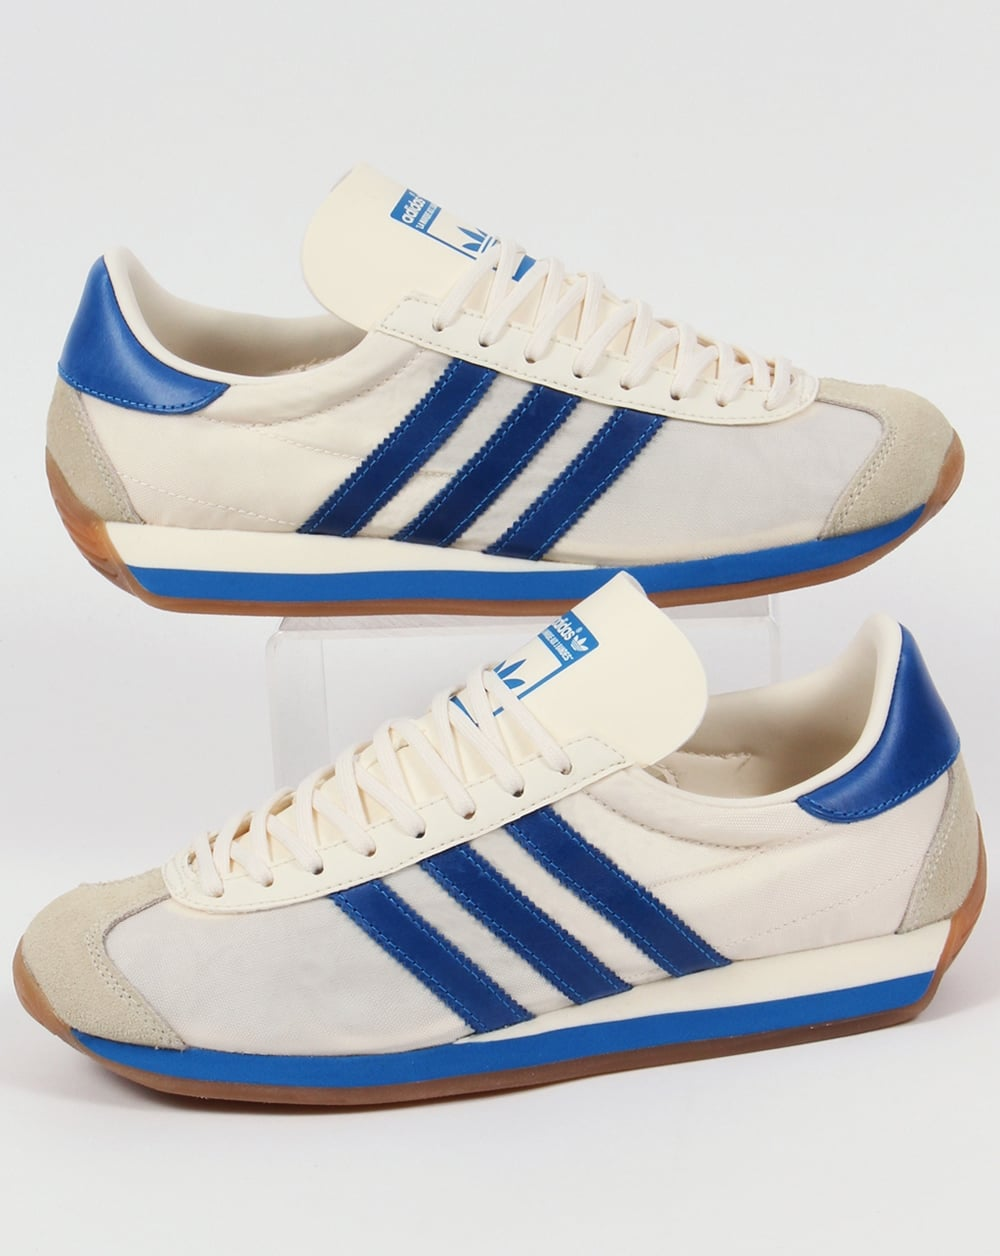 Adidas Country OG Trainers Chalk WhiteBluebird